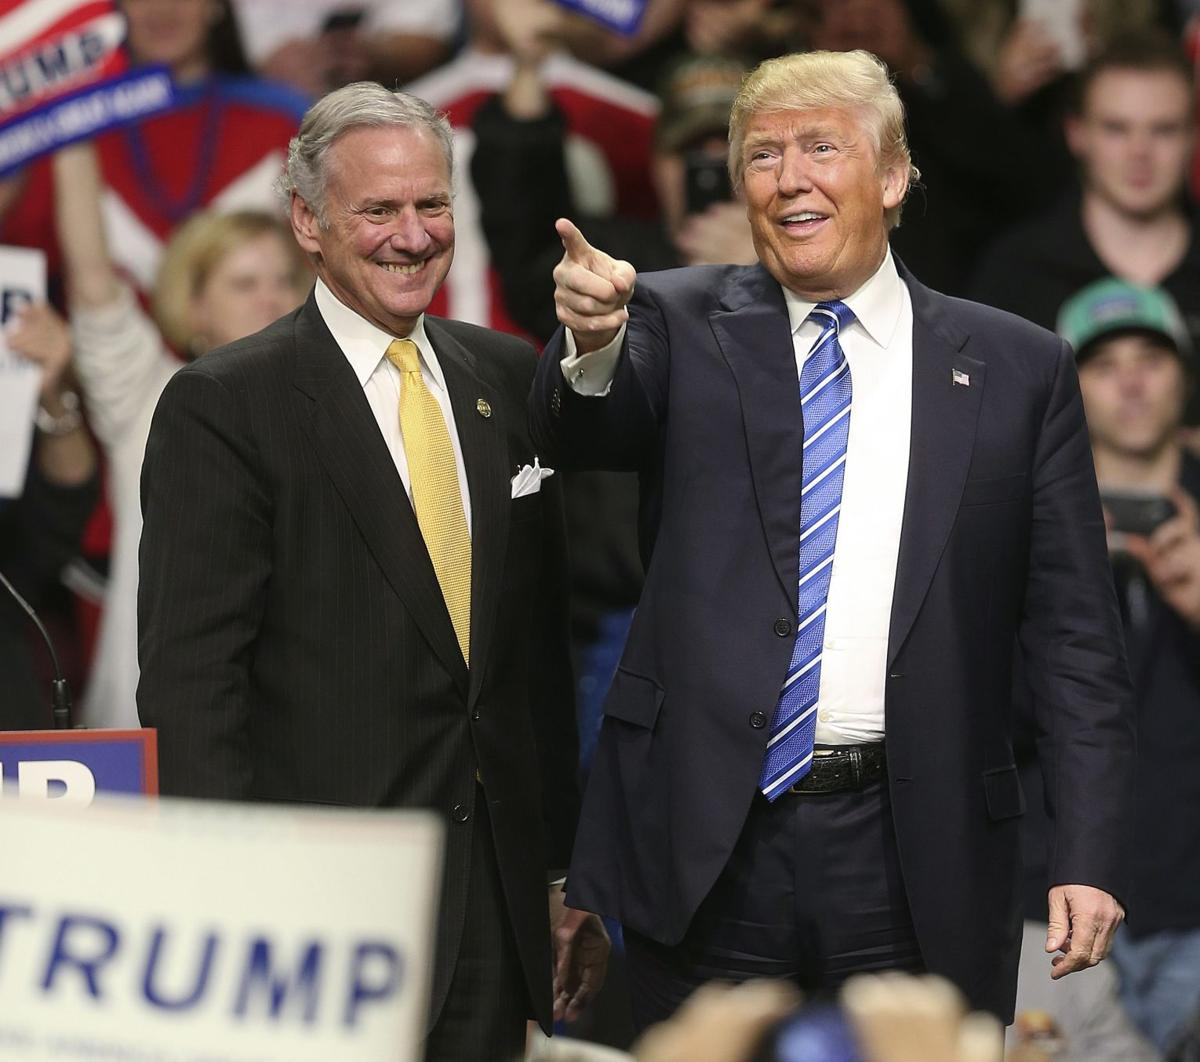 Henry McMaster to deliver nominating speech for Donald Trump